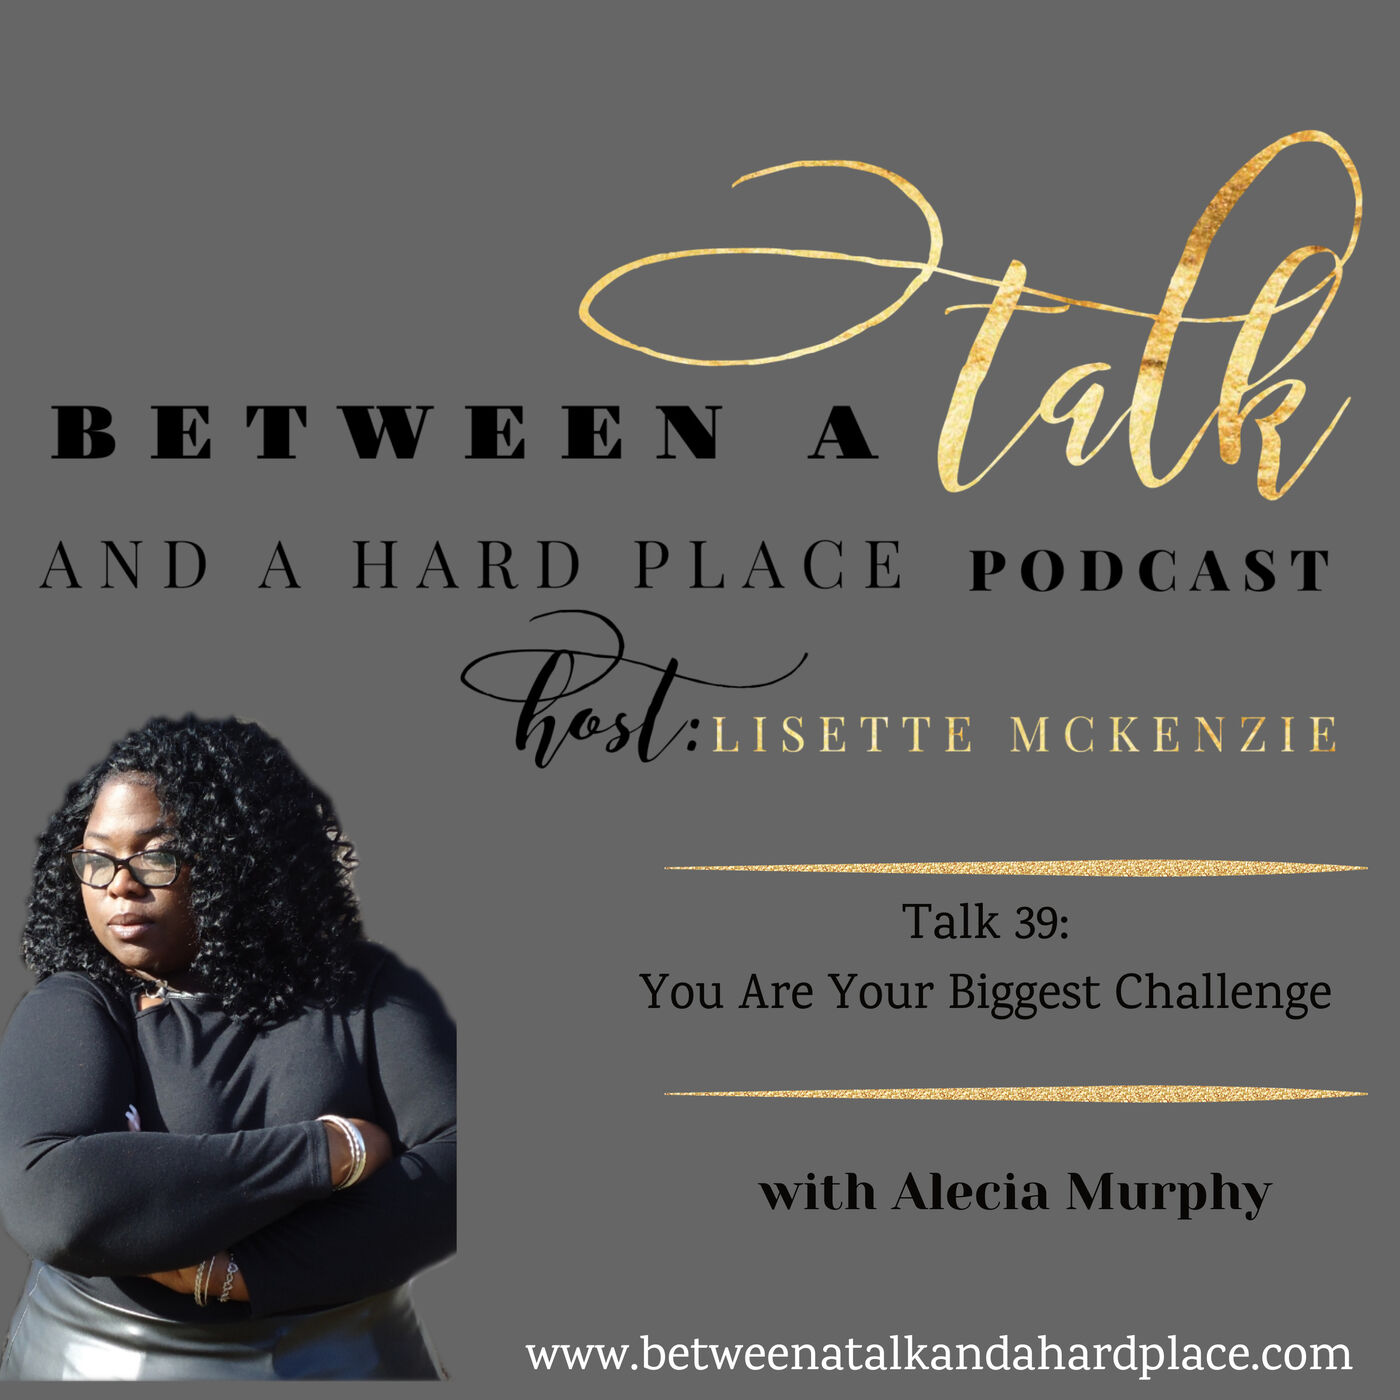 Talk 39: You Are Your Biggest Challenge